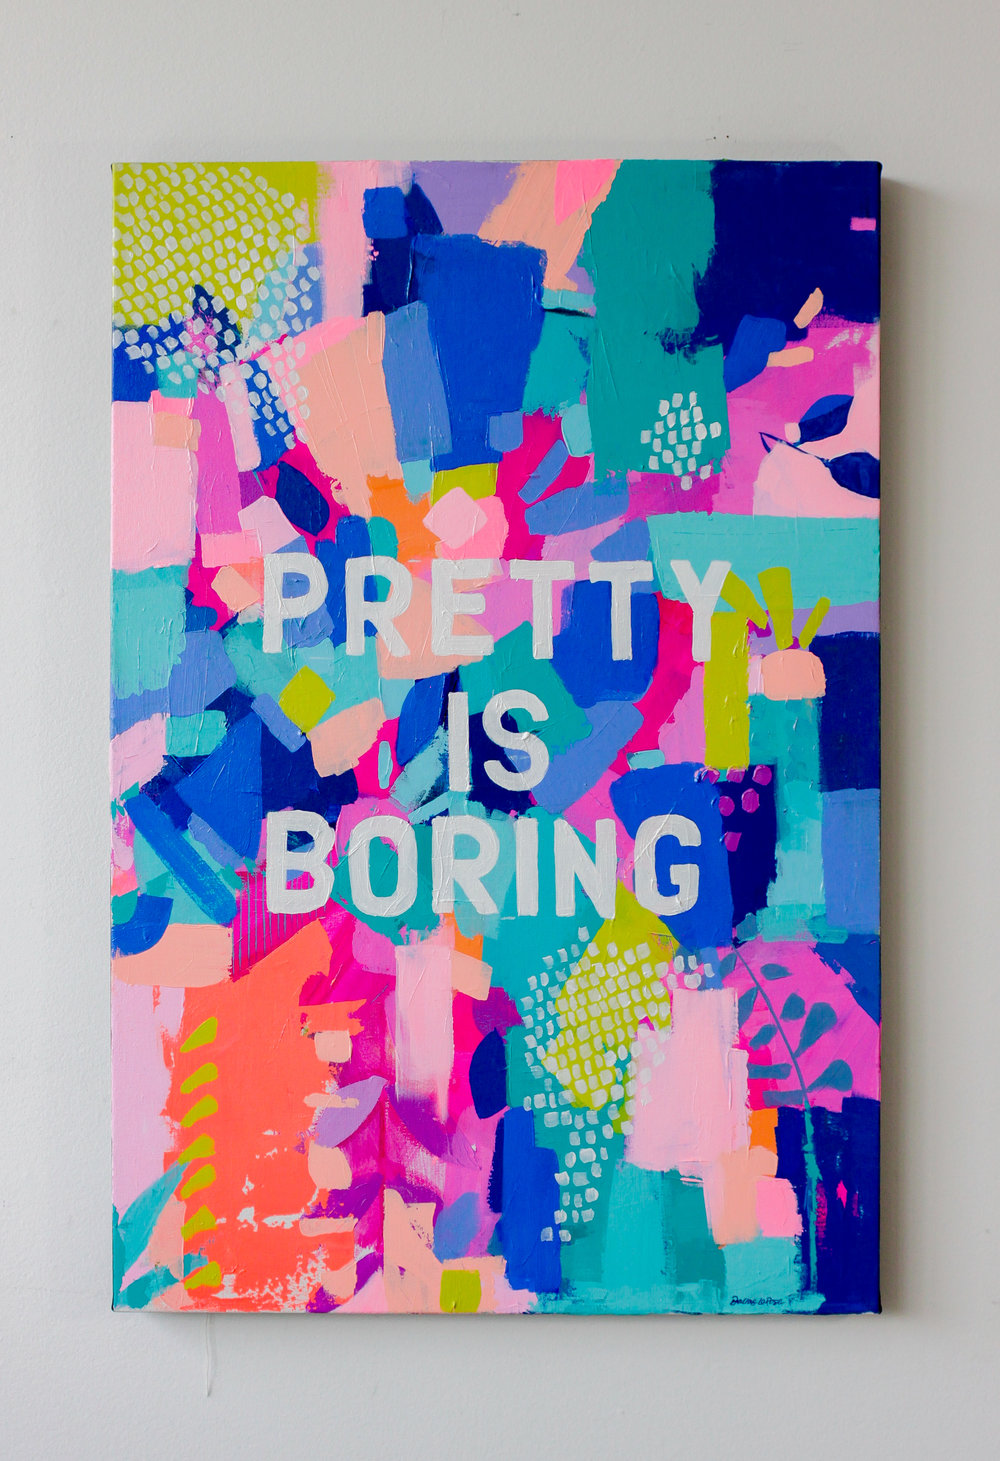 PRETTY IS BORING